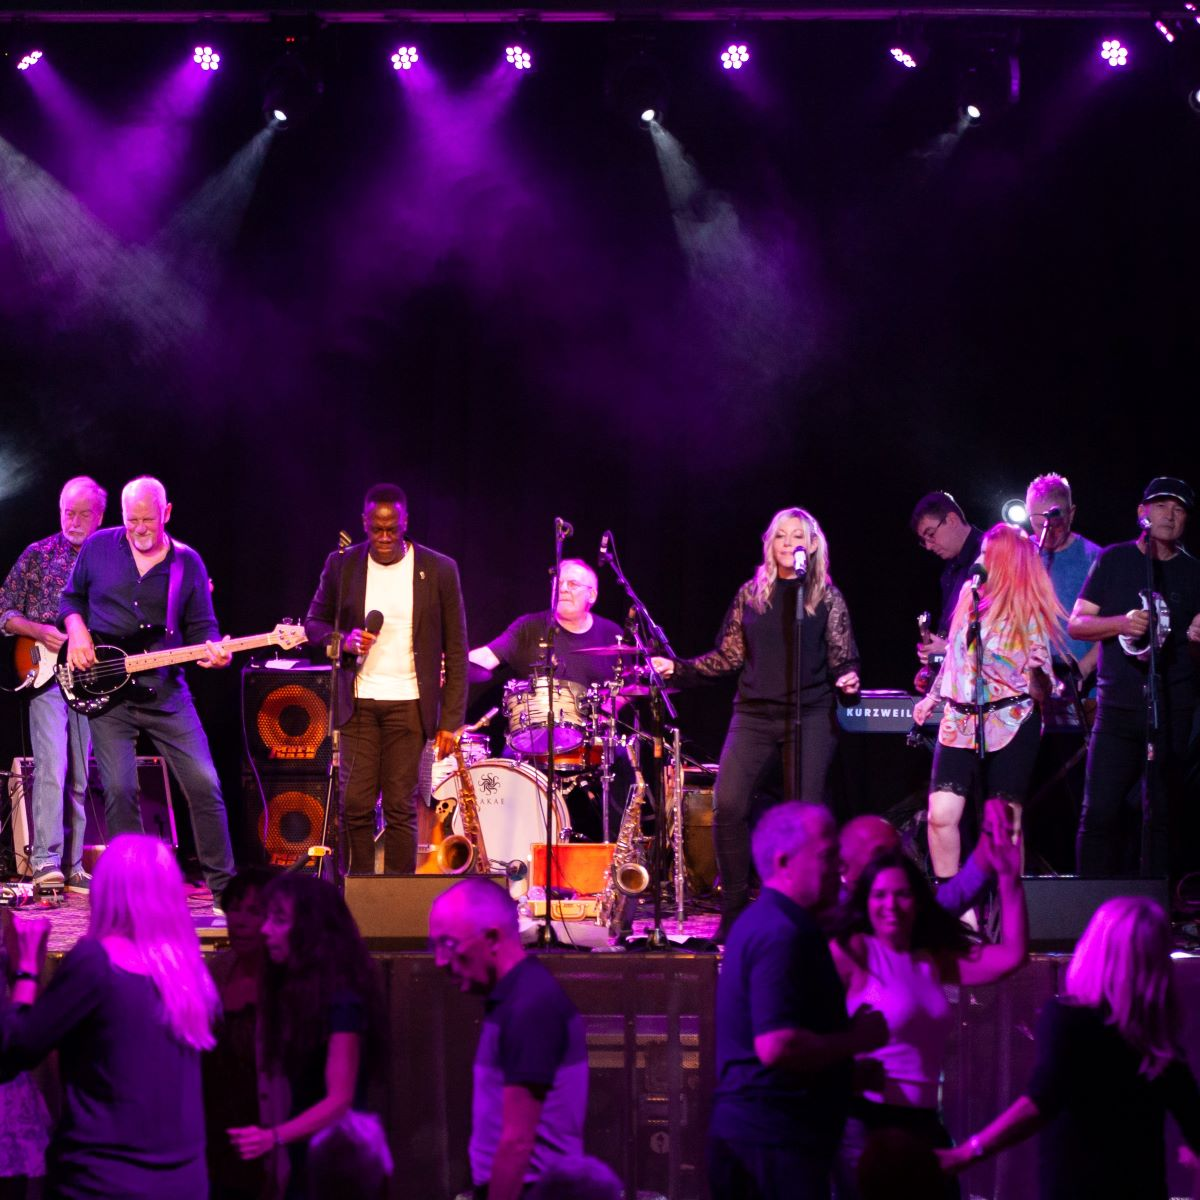 Photos: Southampton Allstars lineup at the 1865, Music in the City